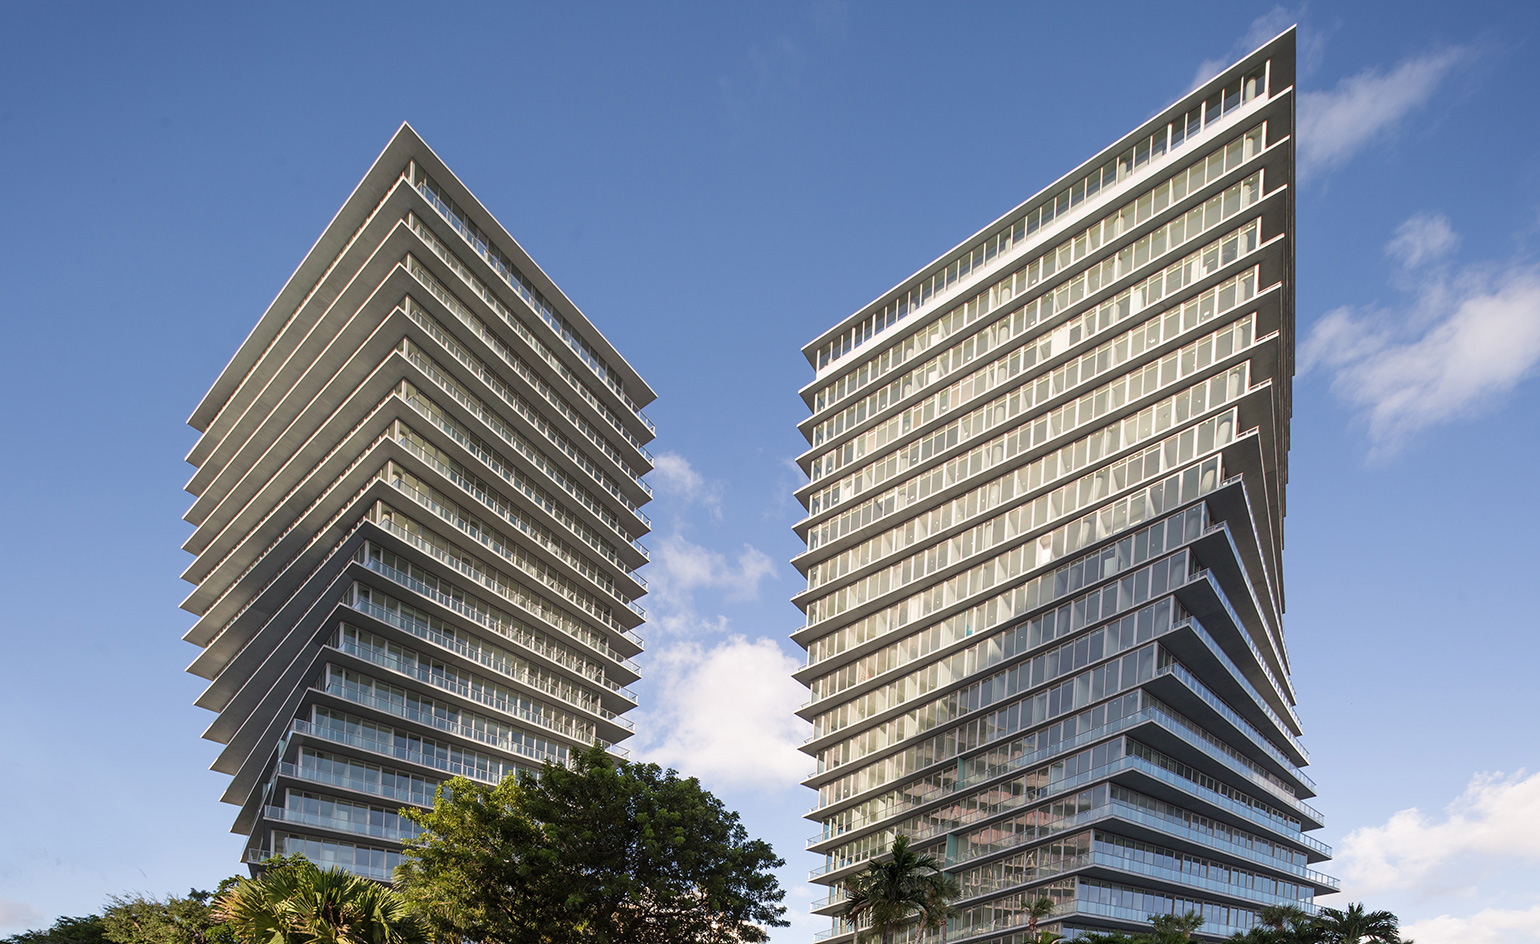 Bjarke Ingels Group Completes Grove Towers In Miami